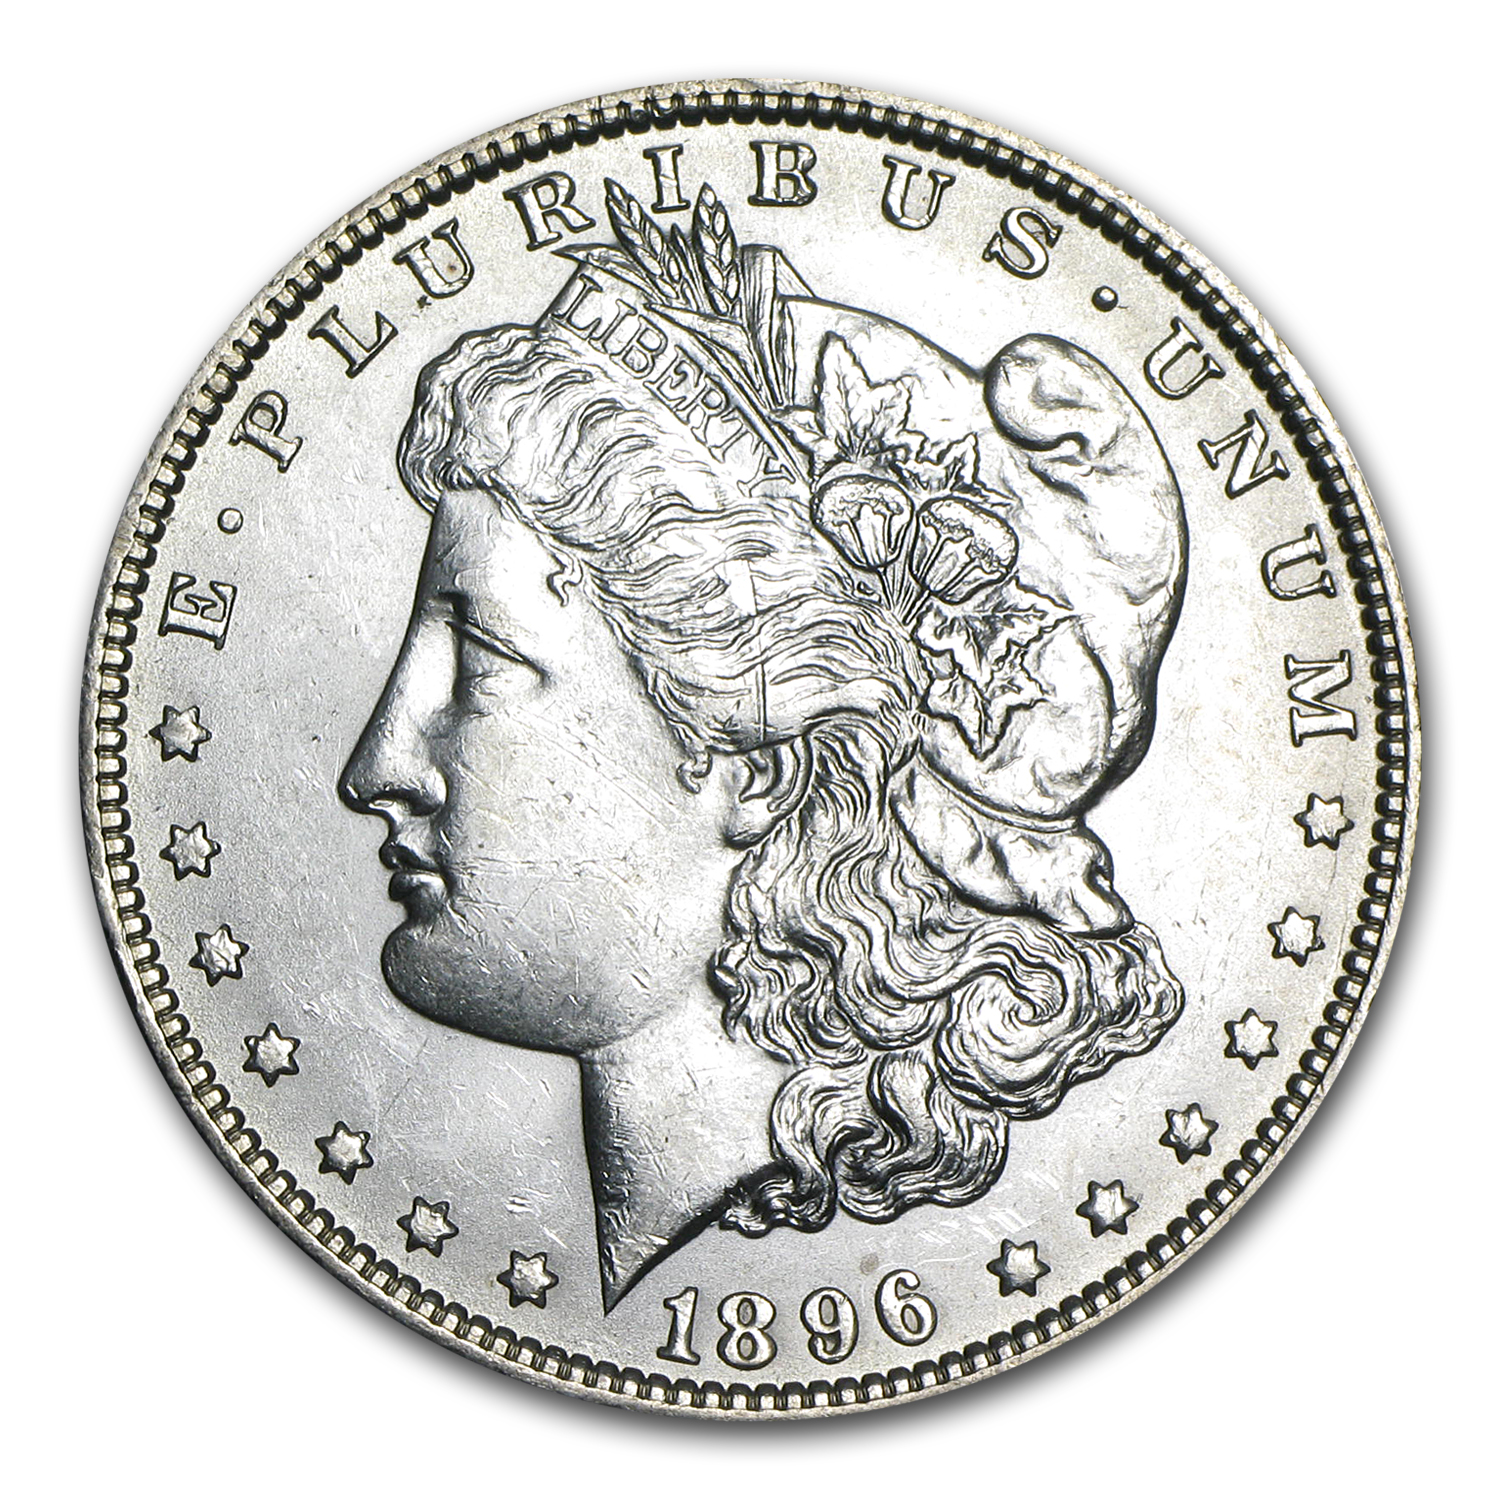 1896-O Morgan Dollar - Brilliant Uncirculated